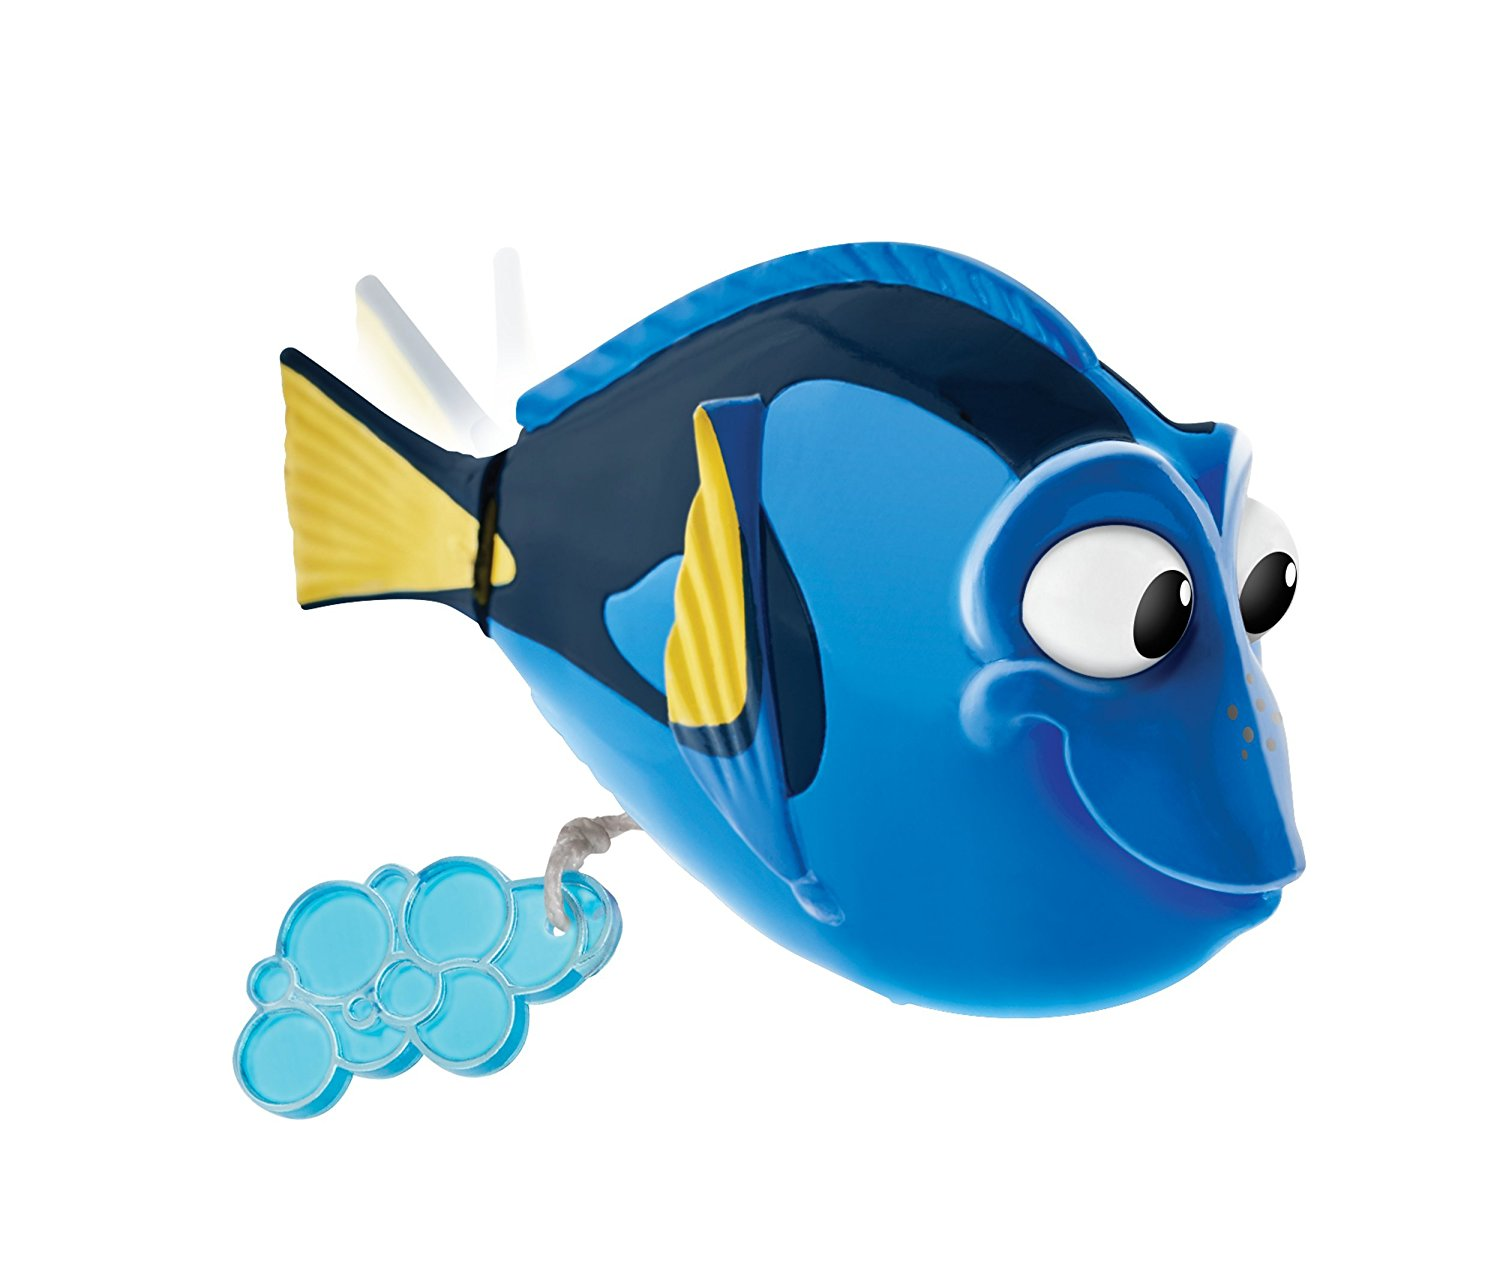 Amazon.com: Finding Dory Dory Bath Toy: Toys & Games